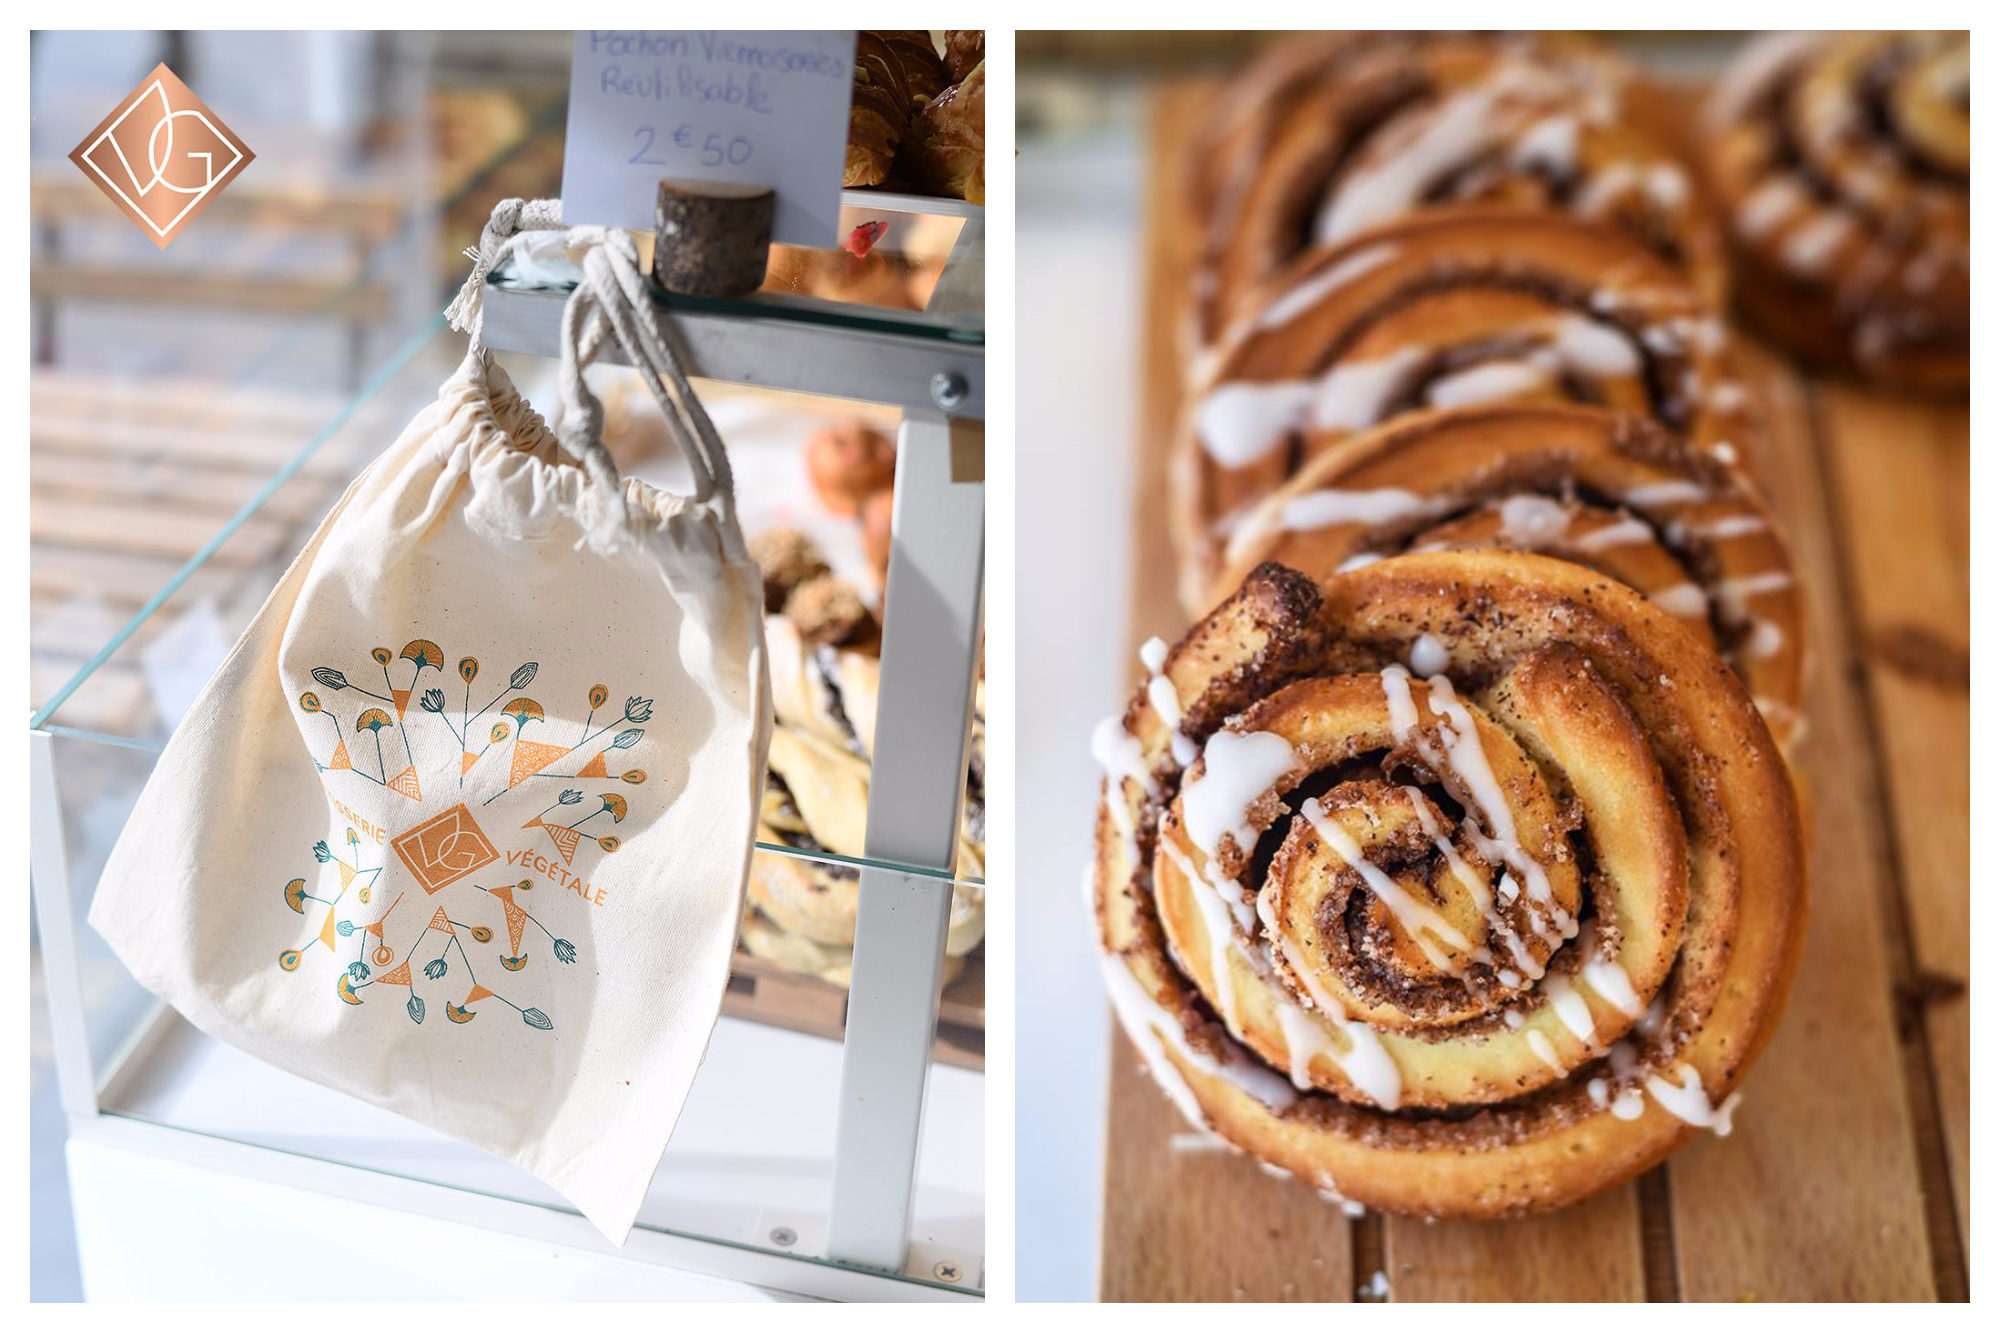 VG patisserie, a gluten-free bakery in Paris, gives out fabric bread bags (left) and offers delicious gluten-free cinnamon swirls (right).